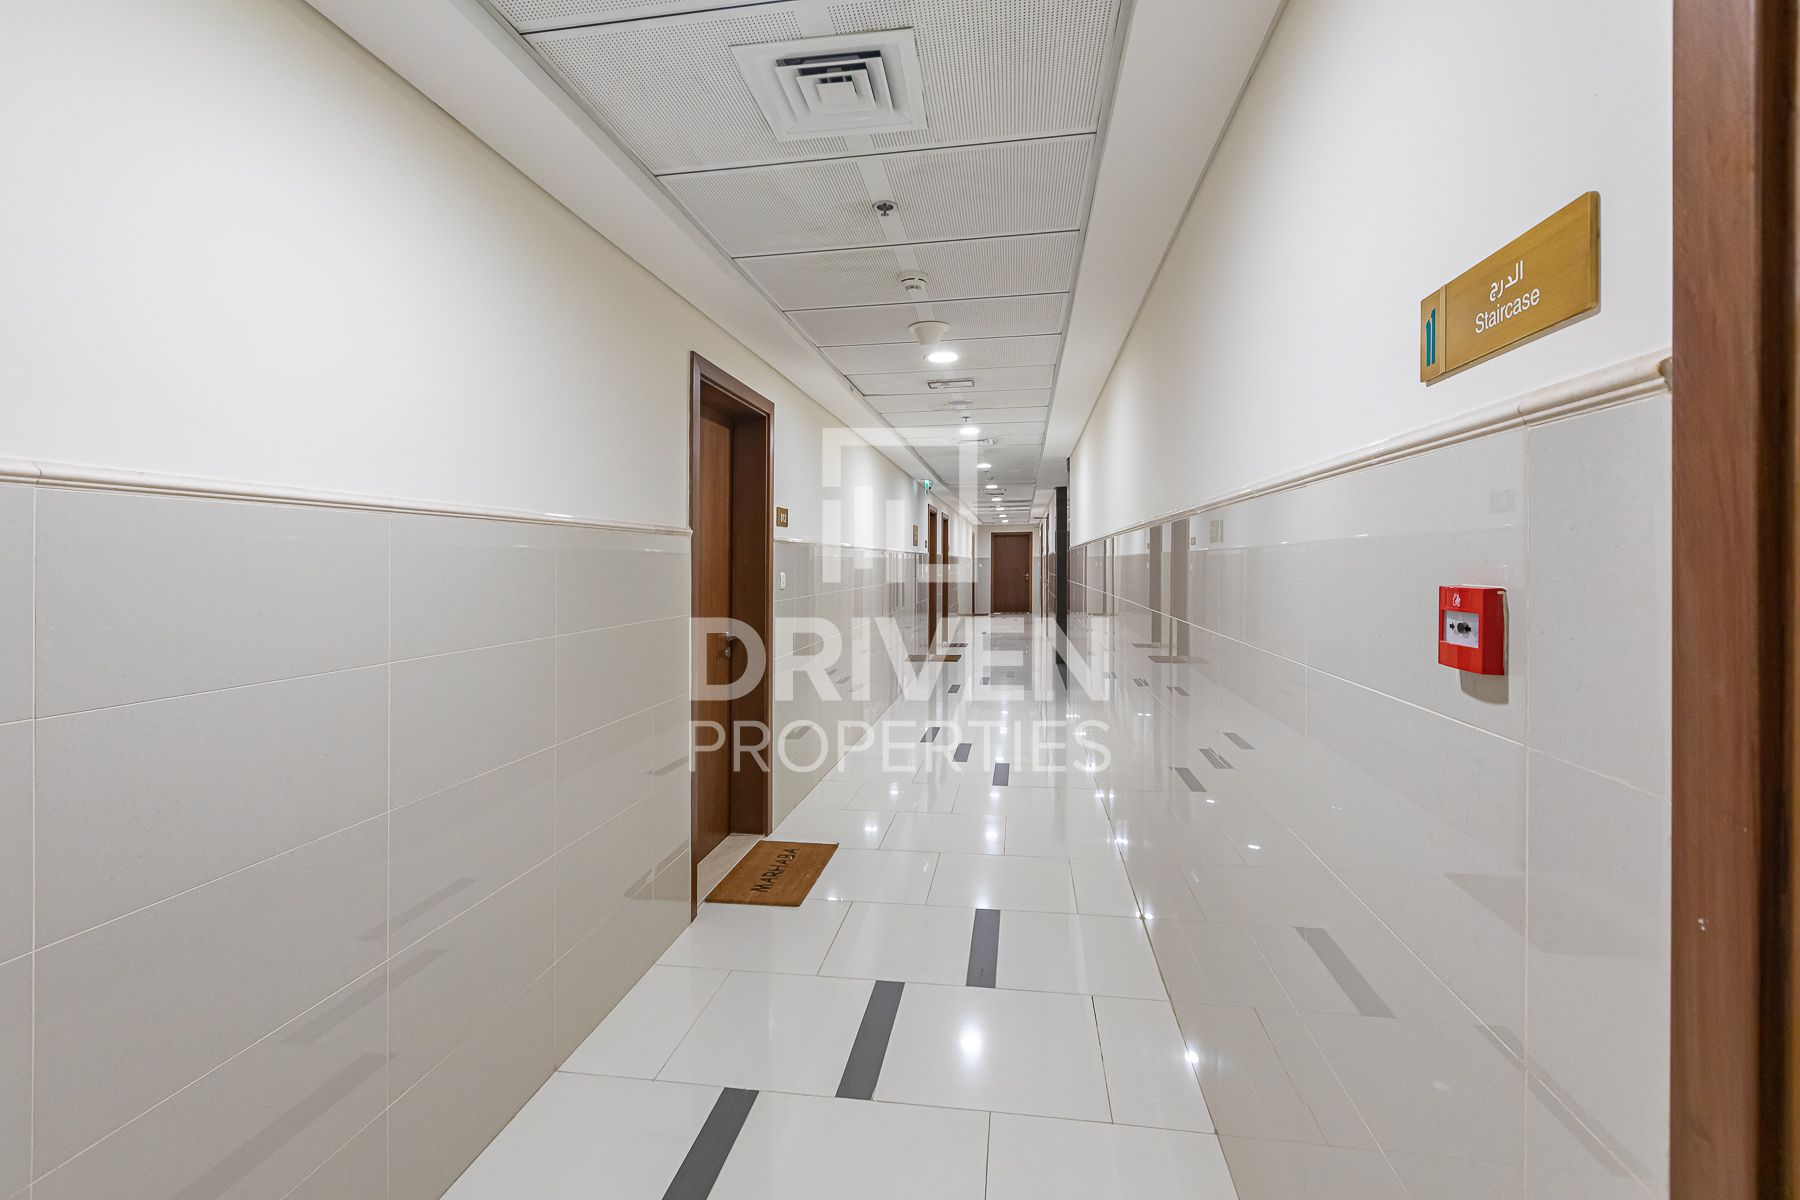 Apartment for Sale in Reef Residence - Jumeirah Village Circle